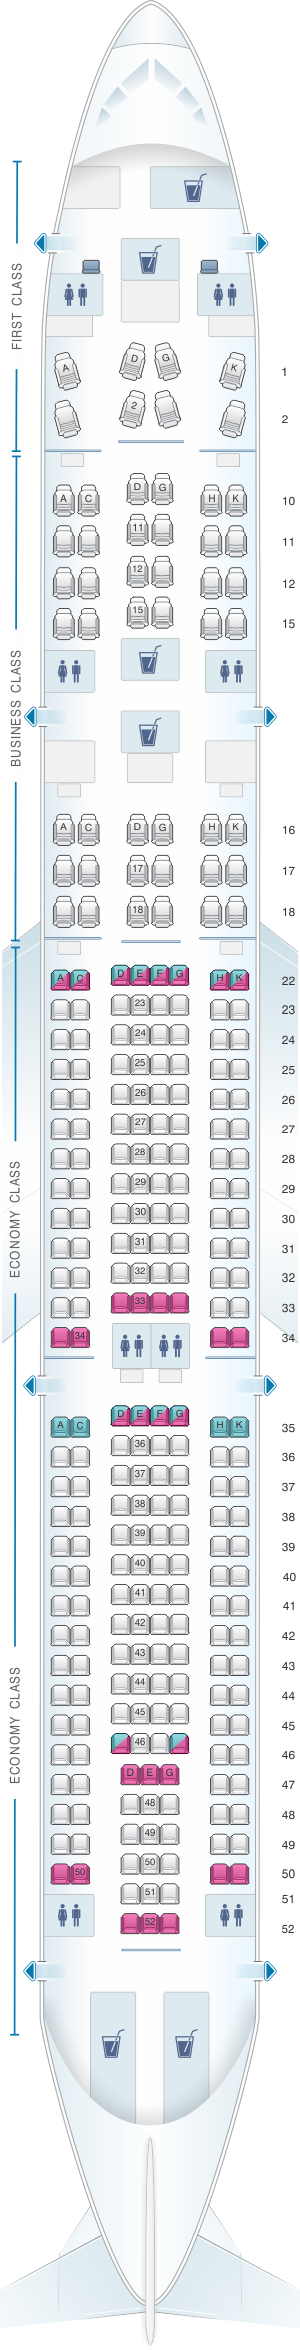 cathay pacific a330 300 seat map Seat Map Cathay Dragon Airbus A330 300 A33r Seatmaestro cathay pacific a330 300 seat map